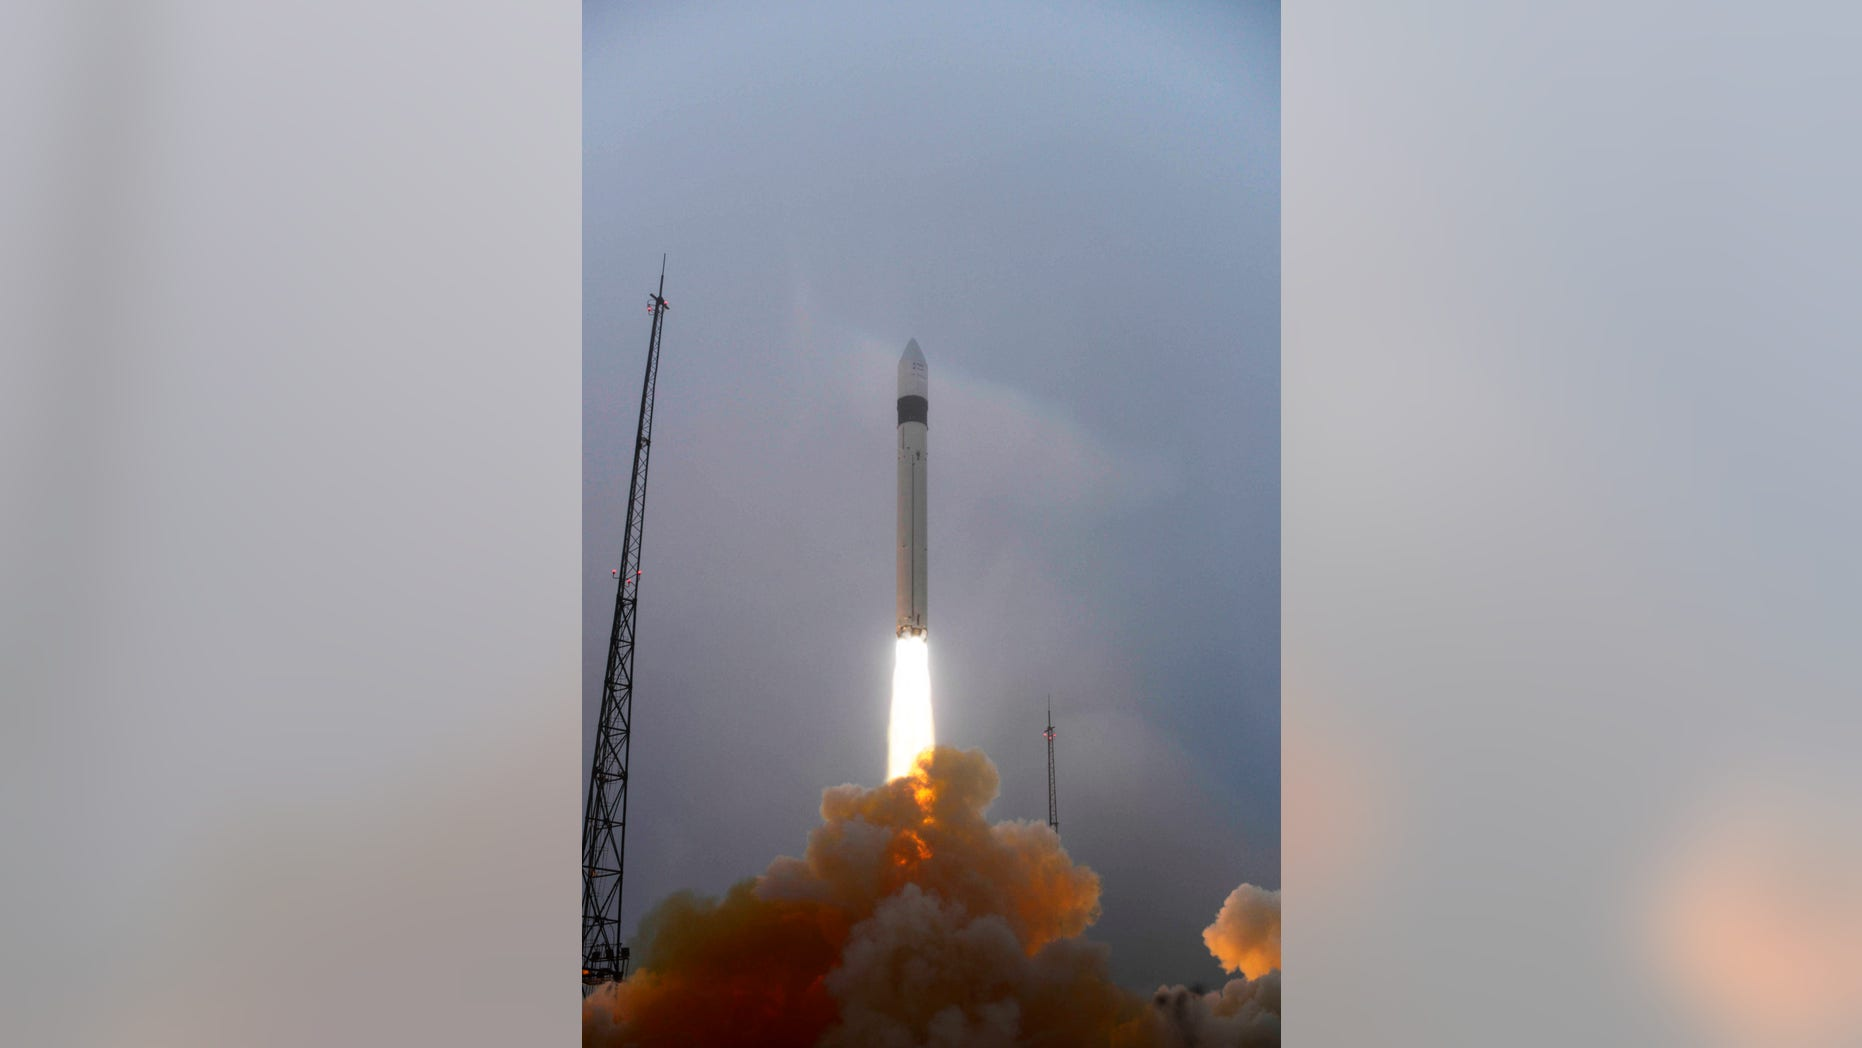 PLESETSK SPACEPORT, RUSSIA - NOVEMBER 22:  In this handout photo released by the European Space Agency (ESA), the Russian Rockot launcher lifts off with the ESAs three-satellite Swarm constellation November 22, 2013 from the Plesetsk spaceport.The satellites will be used to monitor Earths magnetic field.  (Photo by Stephane Corvaja/ESA via Getty Images)